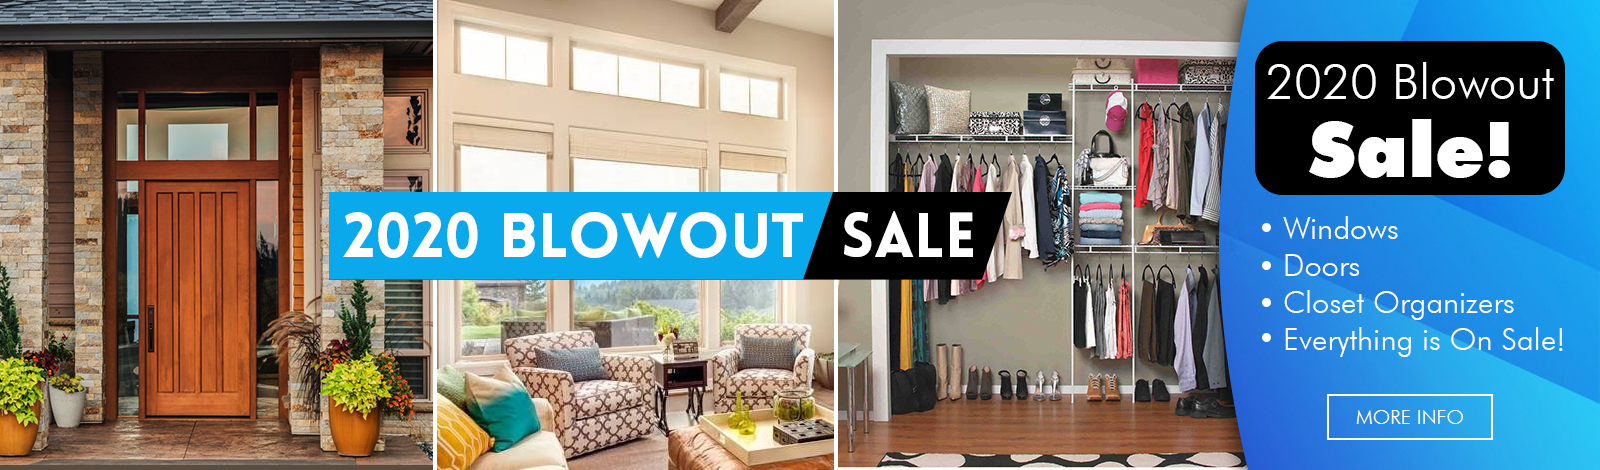 Kobyco Blowout Sale - Save money on Replacement Windows-Interior Doors-Exterior Doors-Closet Organizers-Crown Molding-Louvered Pergola-Awnings in Rockford IL